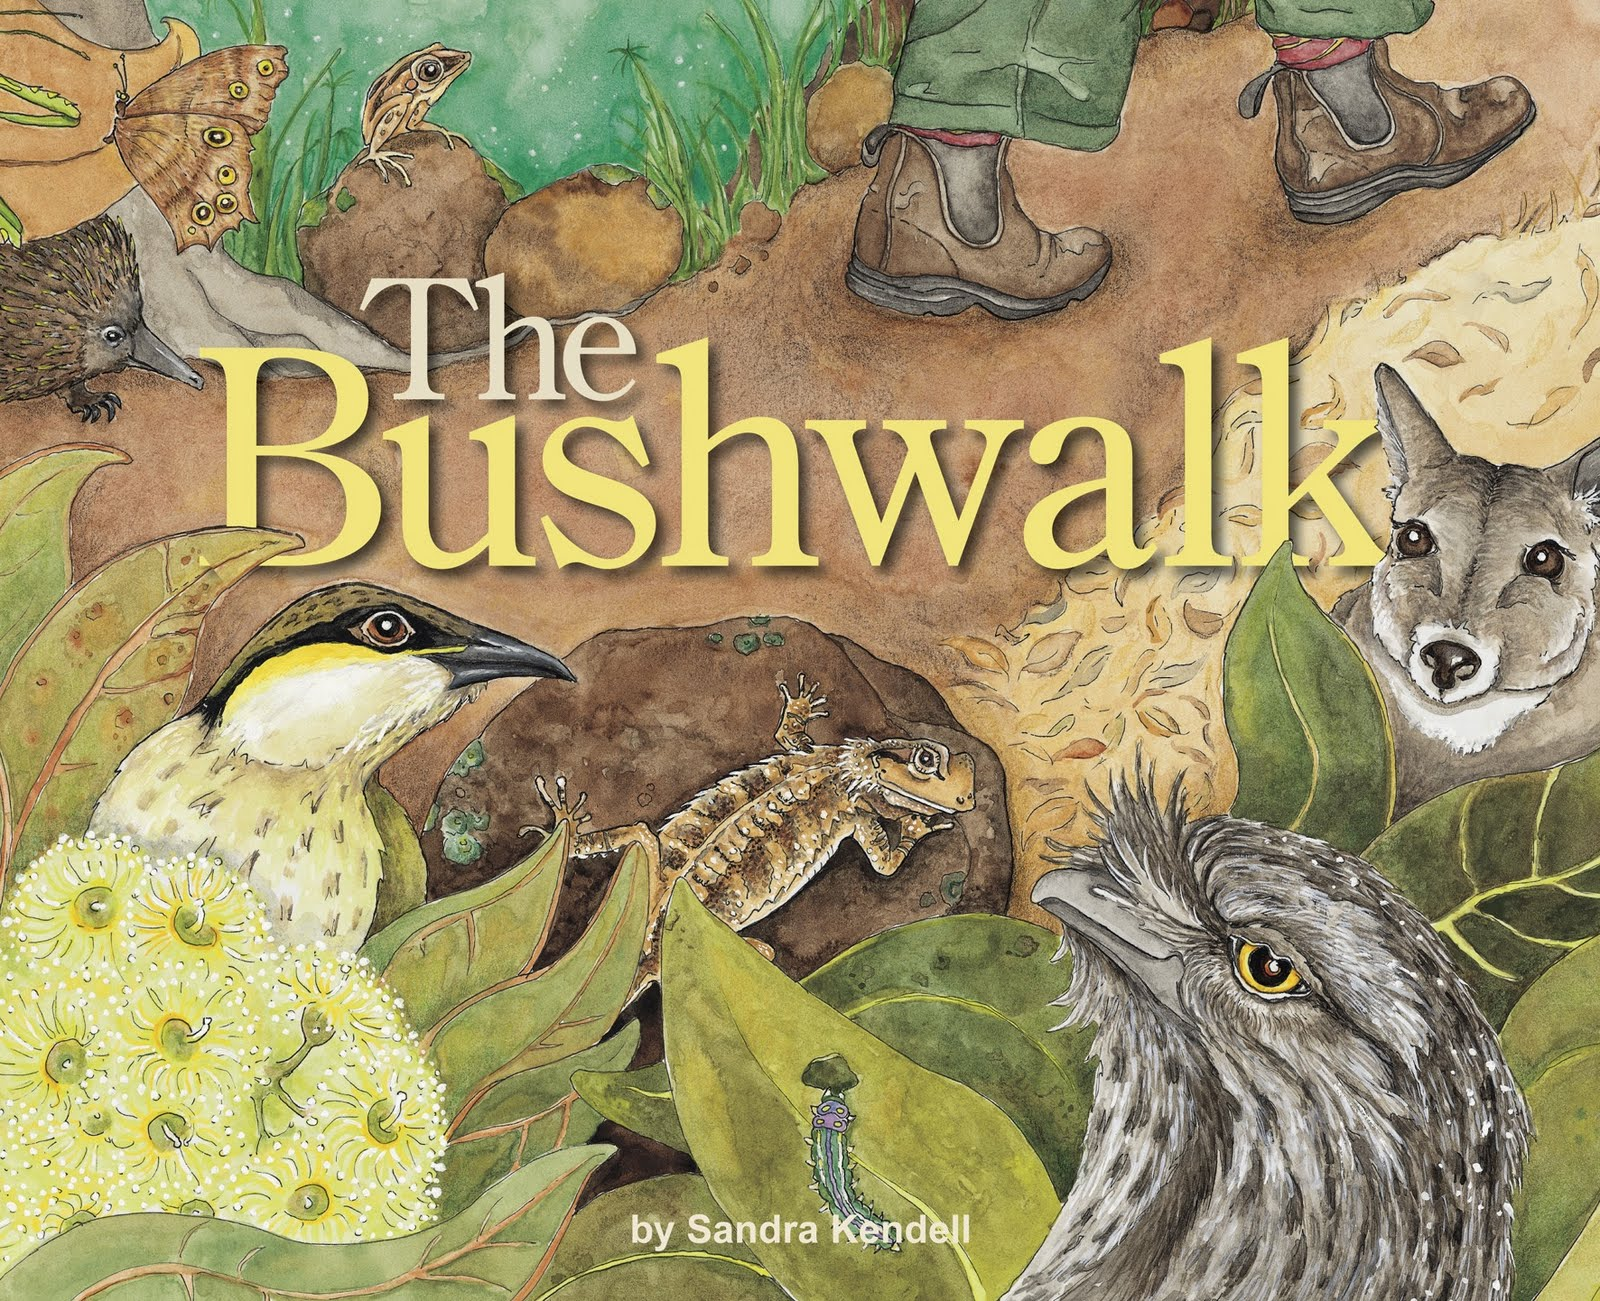 The Bushwalk